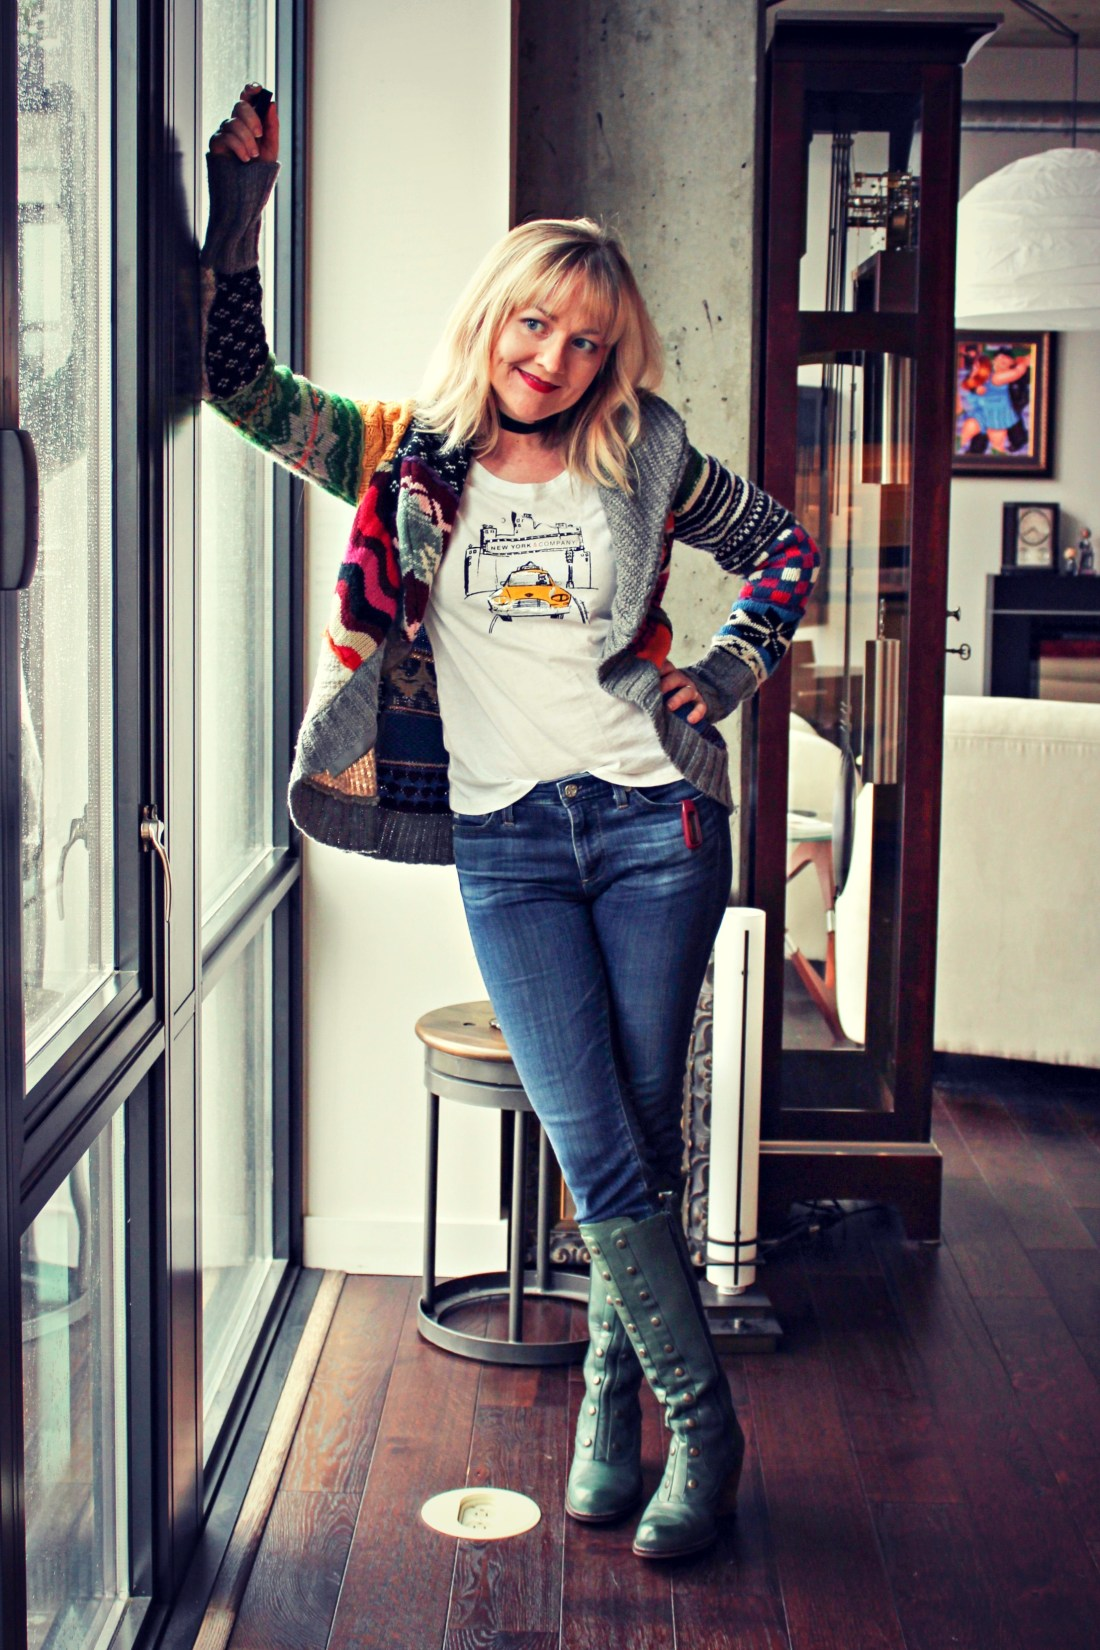 Desigual cardigan with graphic tee and Fluevog boots.